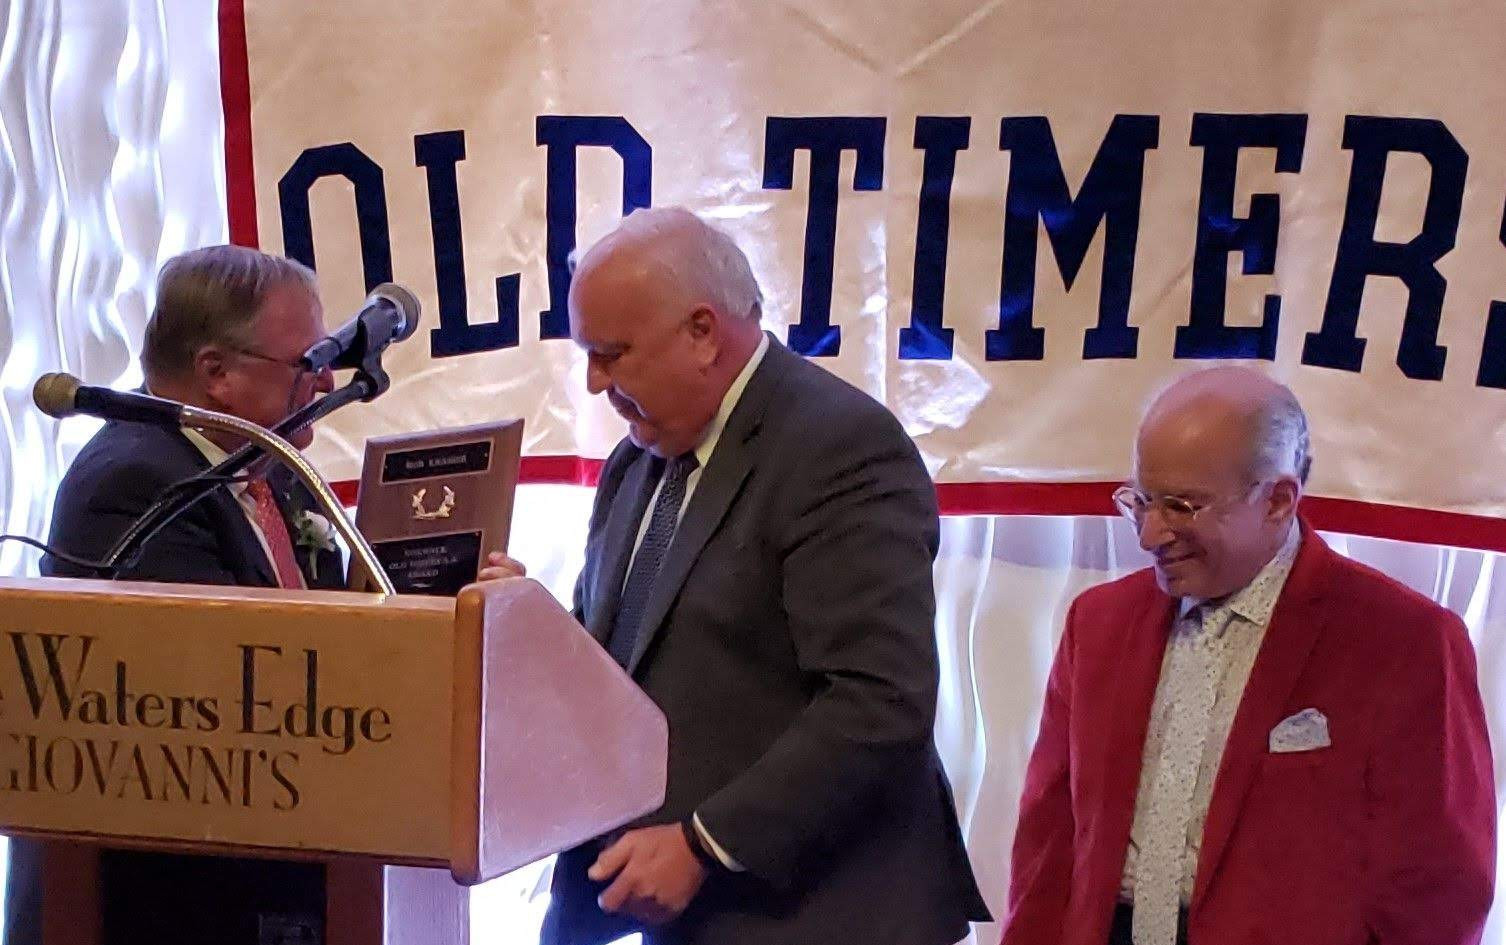 Honoree Bob Kramer receiving his plaque from Norwalk Old Timers Association president Jack Couch, with emcee George Albano far right.  (photo by Anna Mastrolillo)